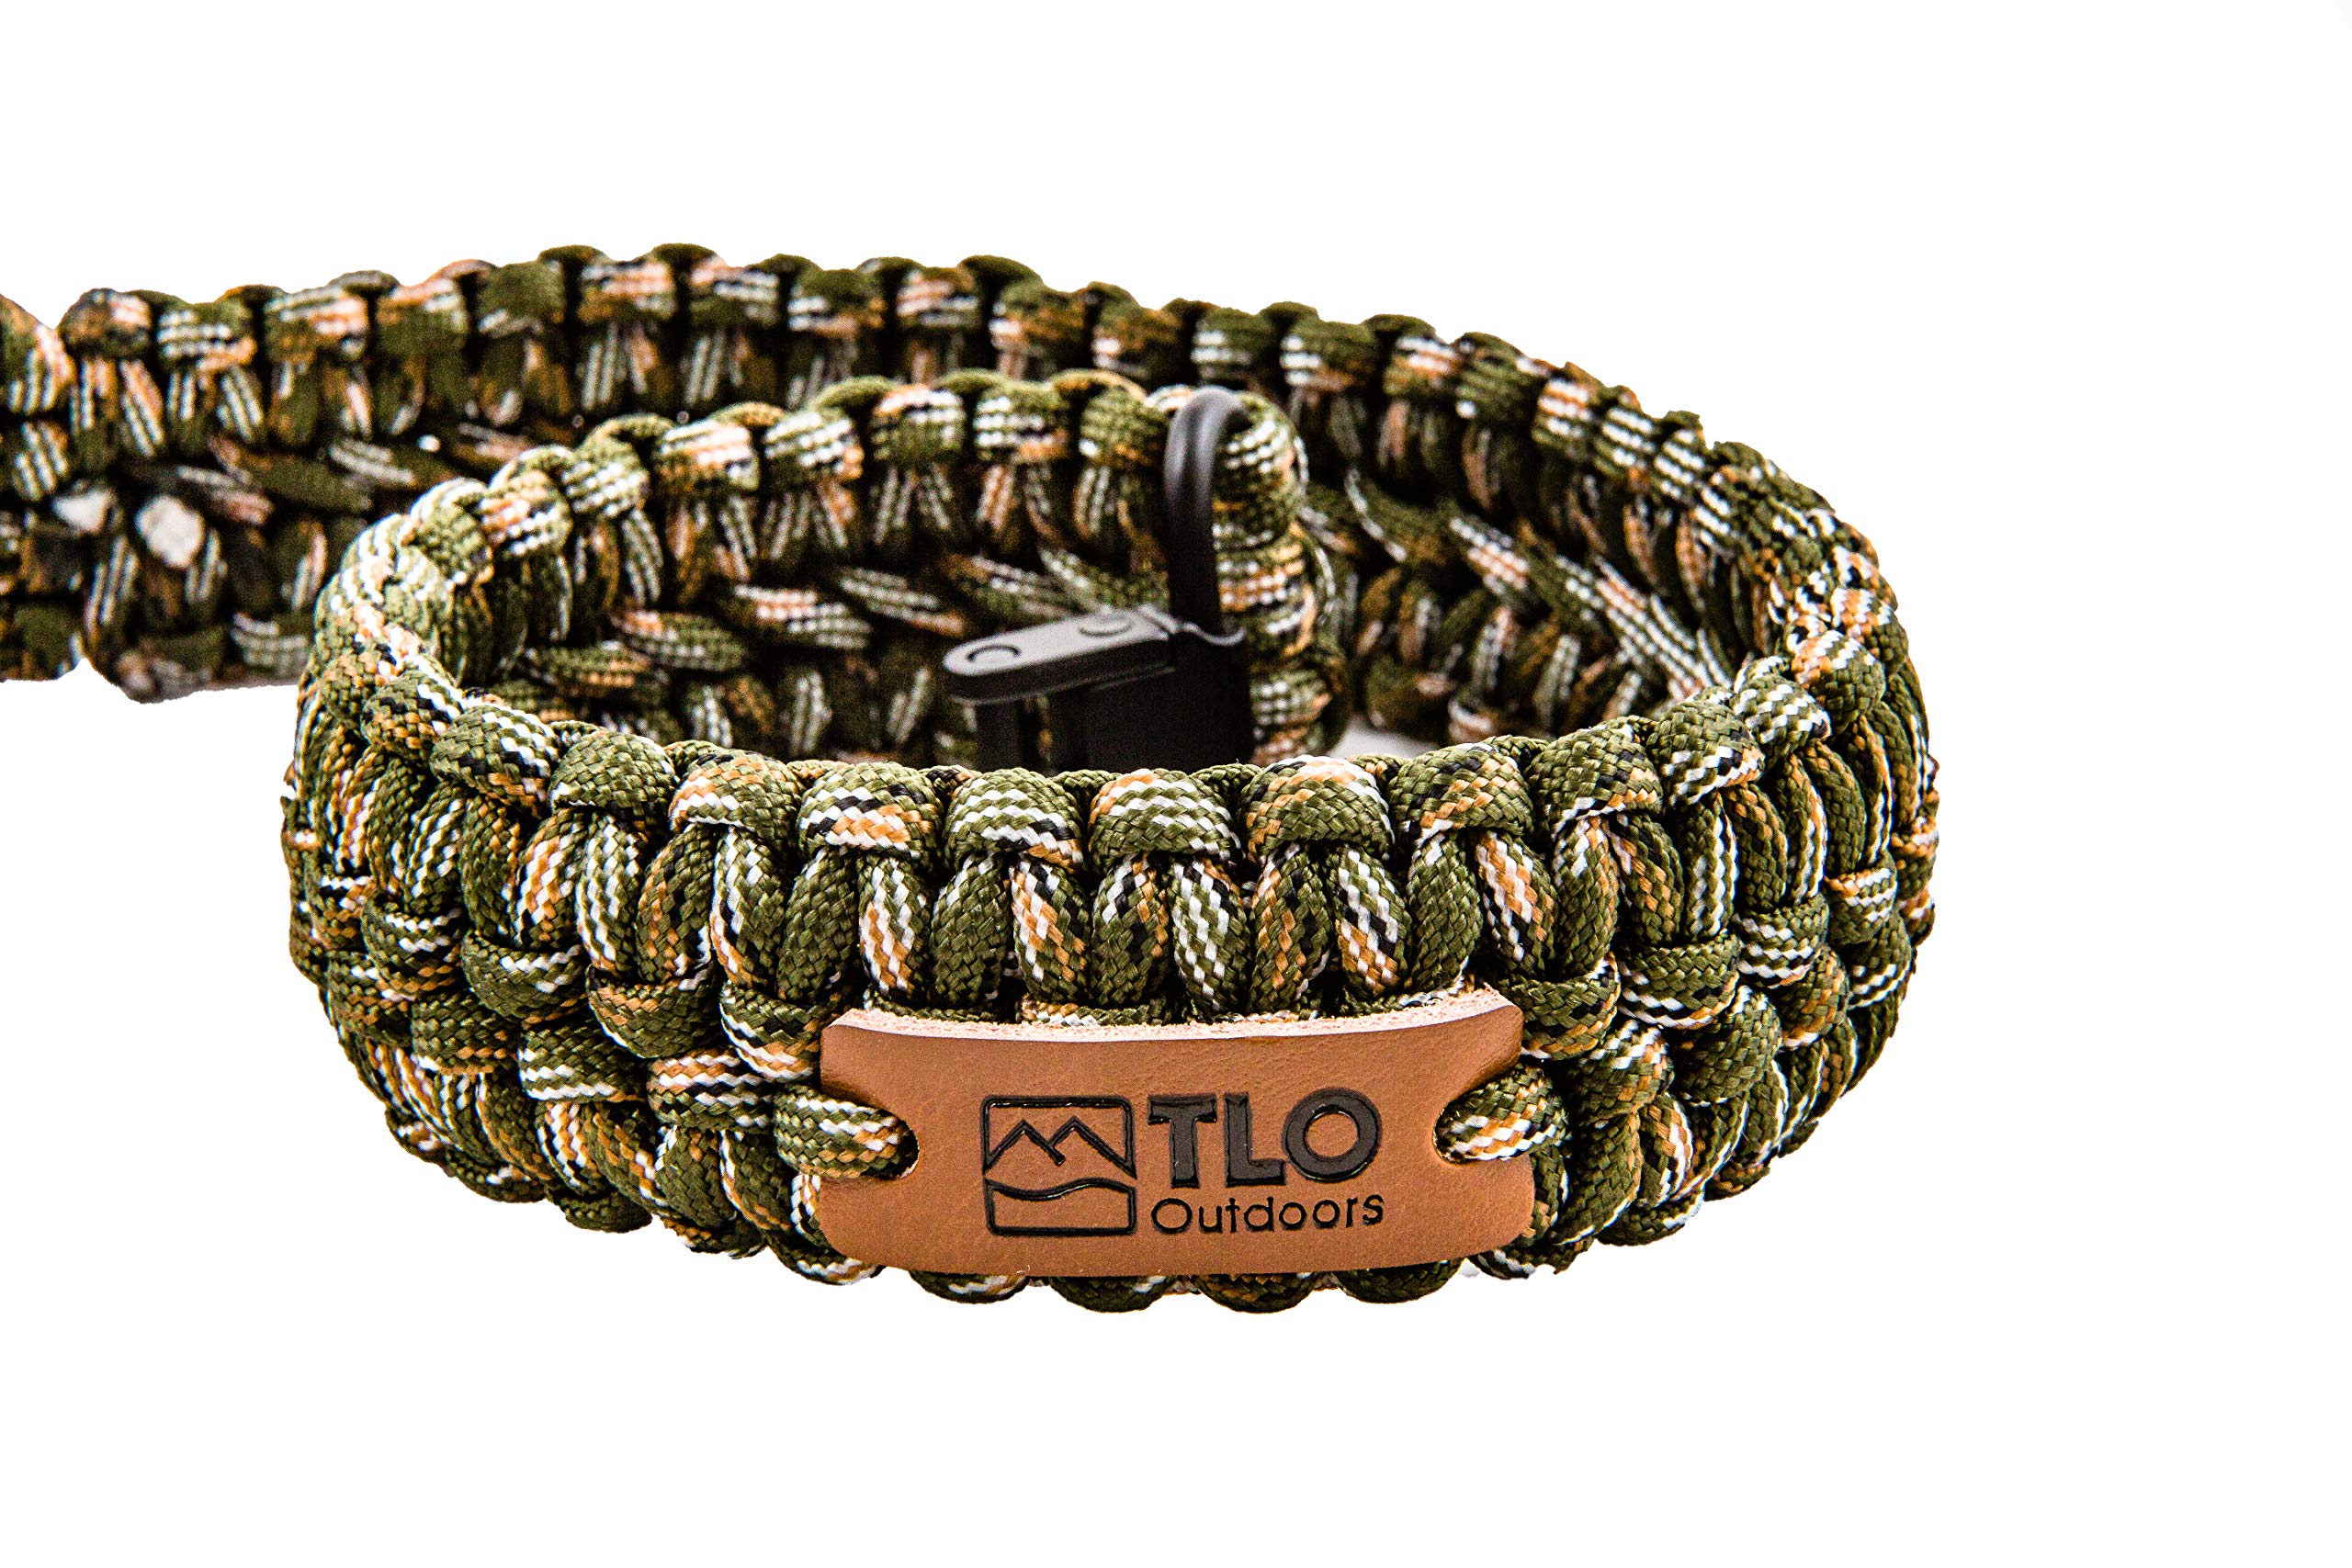 TLO Outdoors Paracord Gun Sling - Adjustable 2-Point Paracord Sling Rifle, Shotgun Crossbows (550 Rated Nylon, Kernmantle Paracord, Extra Wide, Green CAMO) by TLO Outdoors